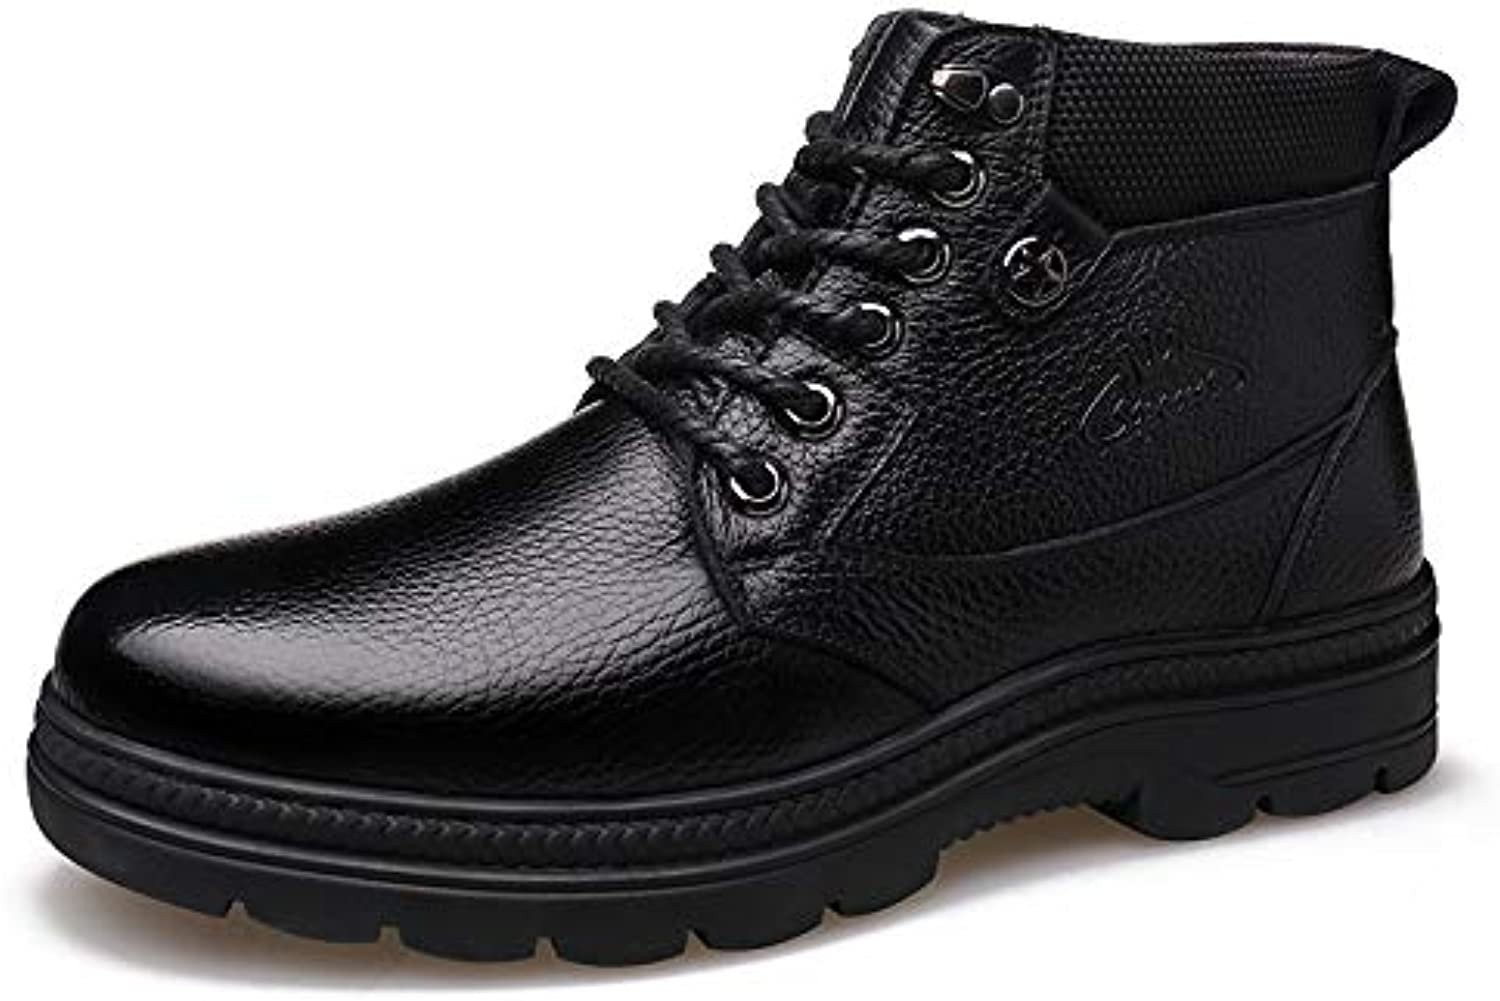 LOVDRAM Boots Men's Autumn And Winter New Martin Boots Casual Warm shoes Thick Men'S Cotton shoes High shoes